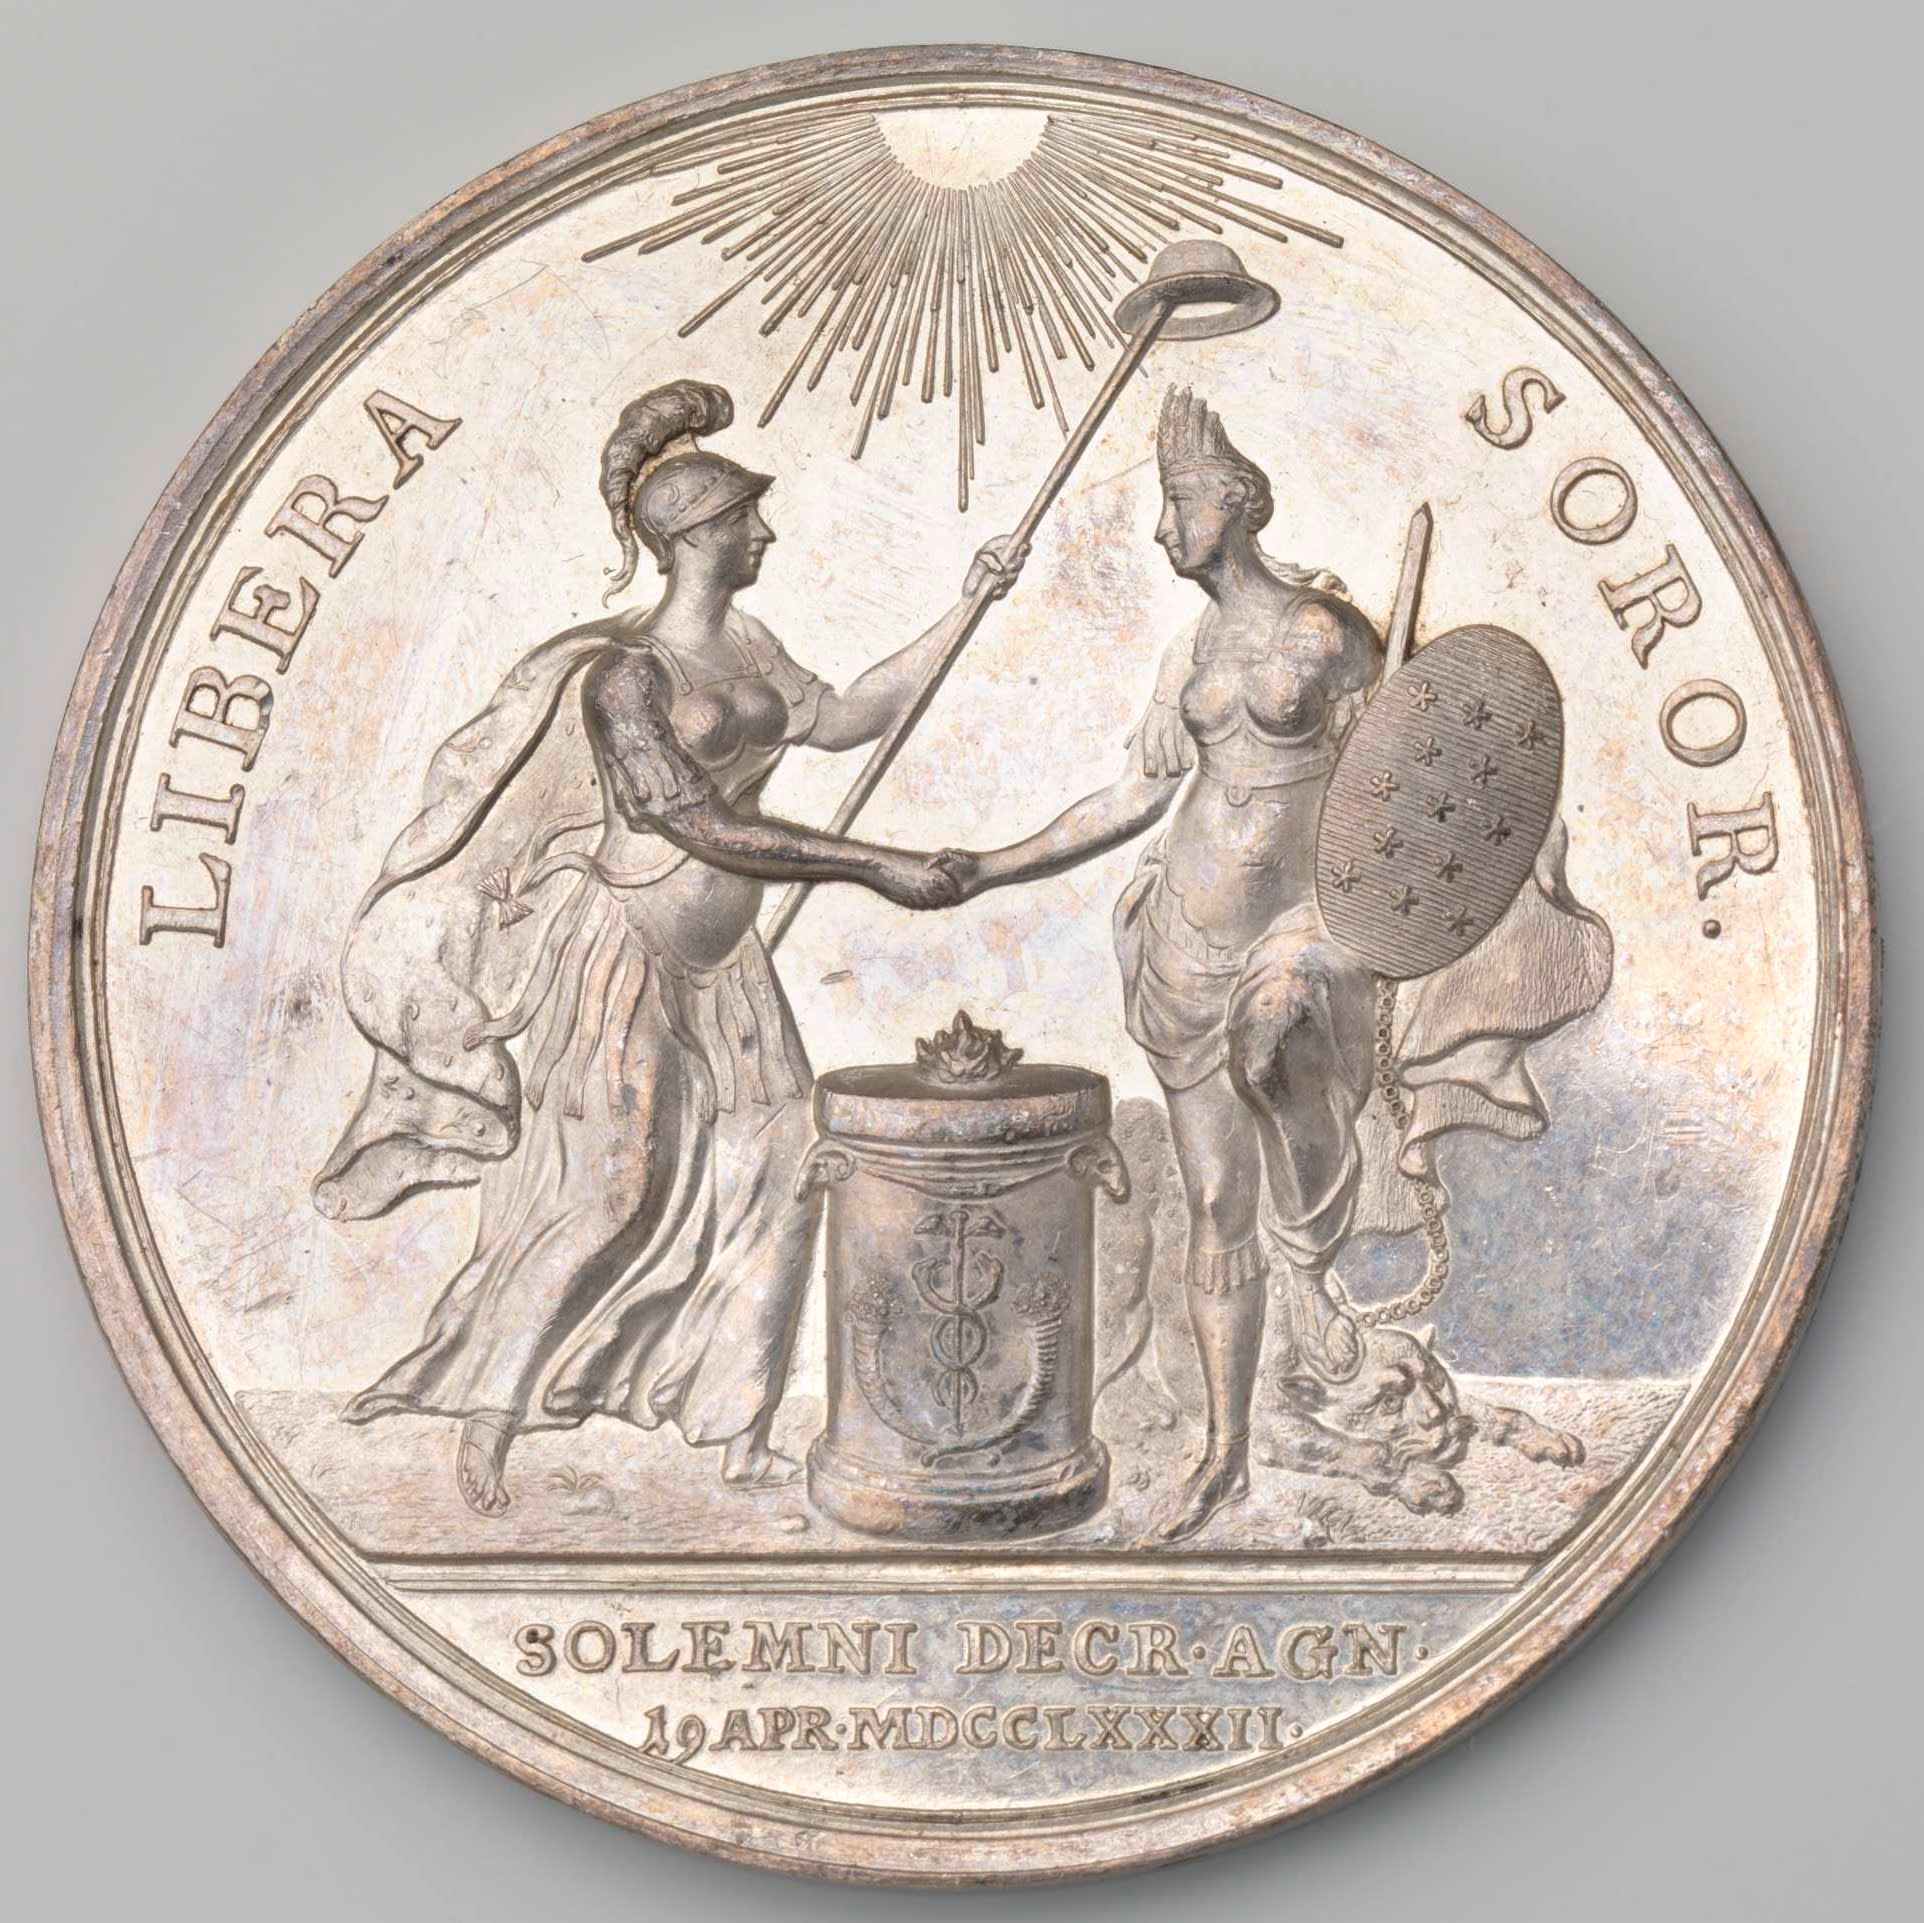 A silver commemorative token in recognition of the independence of the United States of America by the States General of the Netherlands.